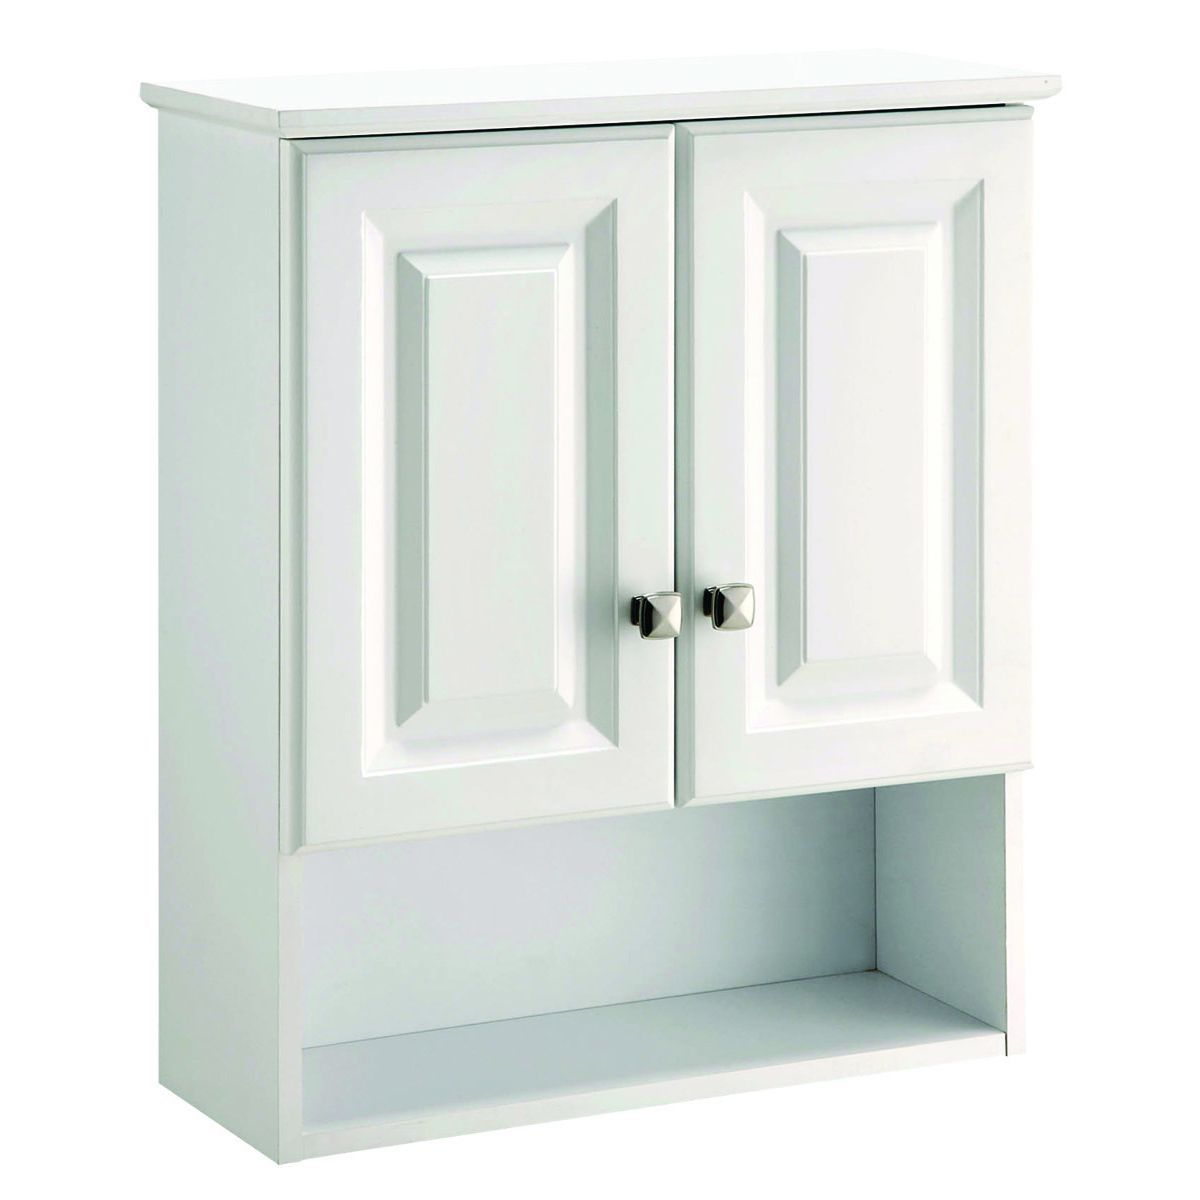 Design House 531715 Wyndham White Semi-gloss Bathroom Wall Cabinet ...